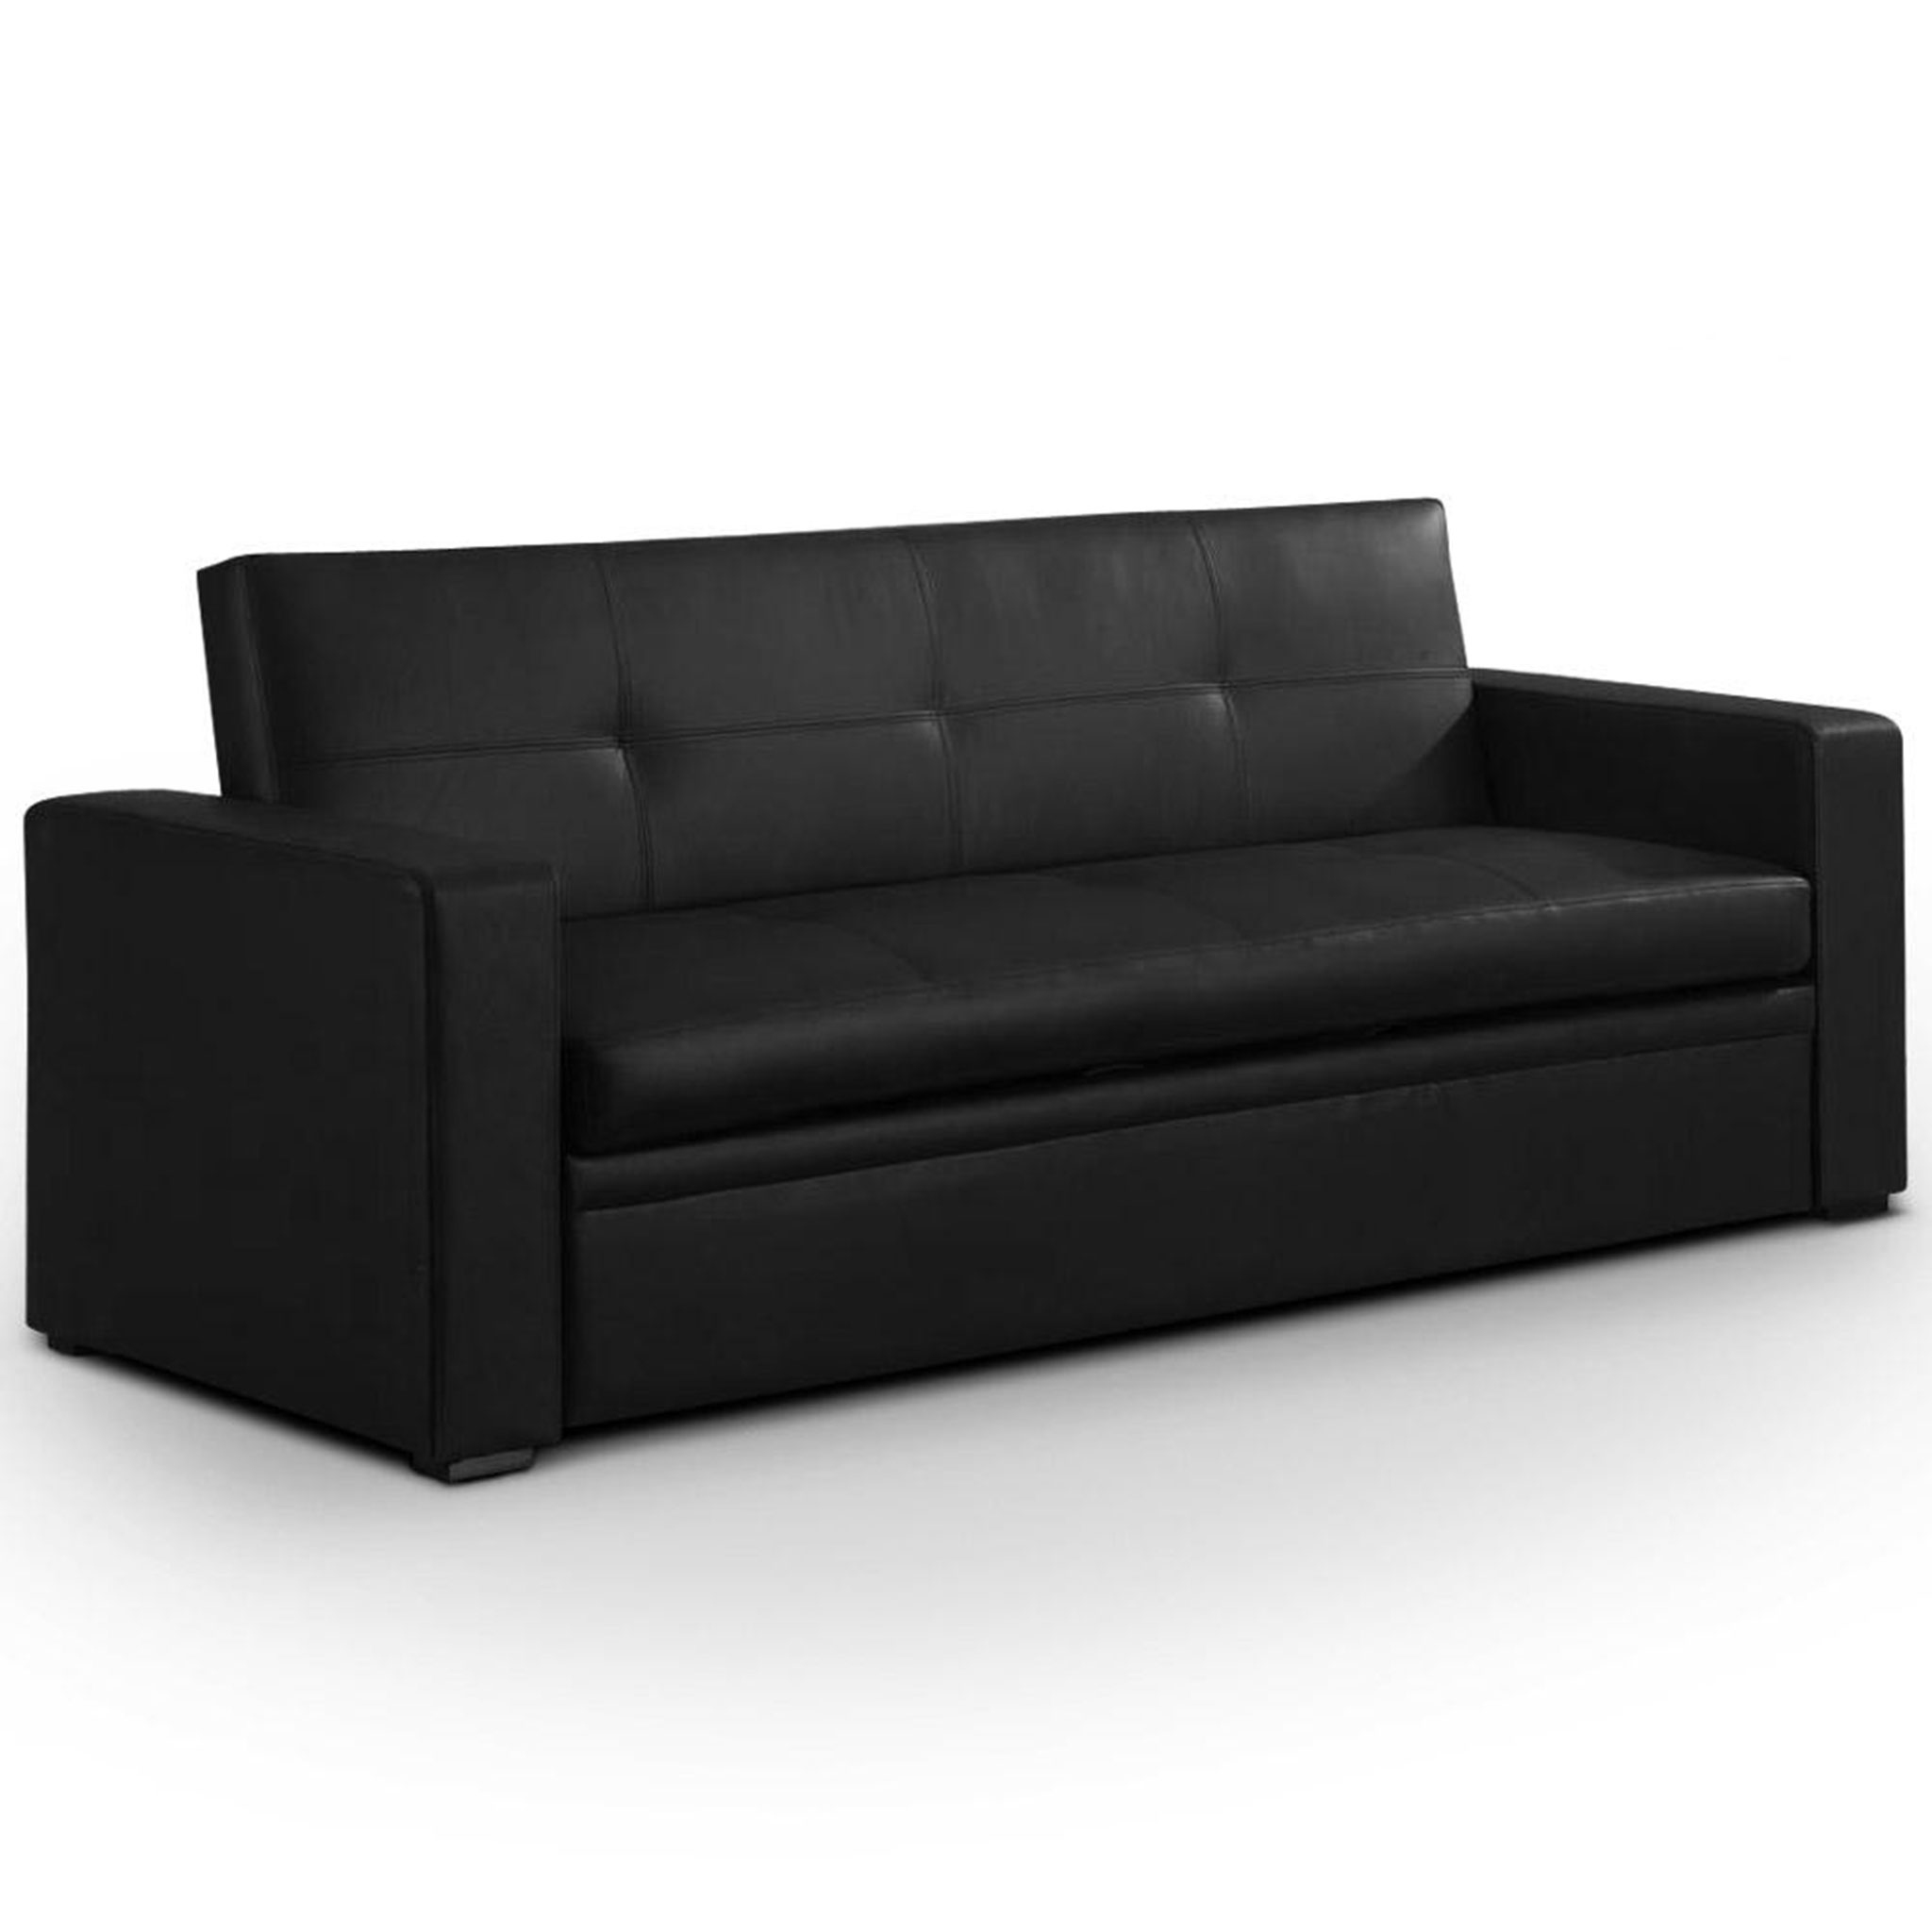 Canapé Simili Cuir Fly Luxe Image Canap Convertible 3 Places Conforama 11 Lit 2 Pas Cher Ikea but